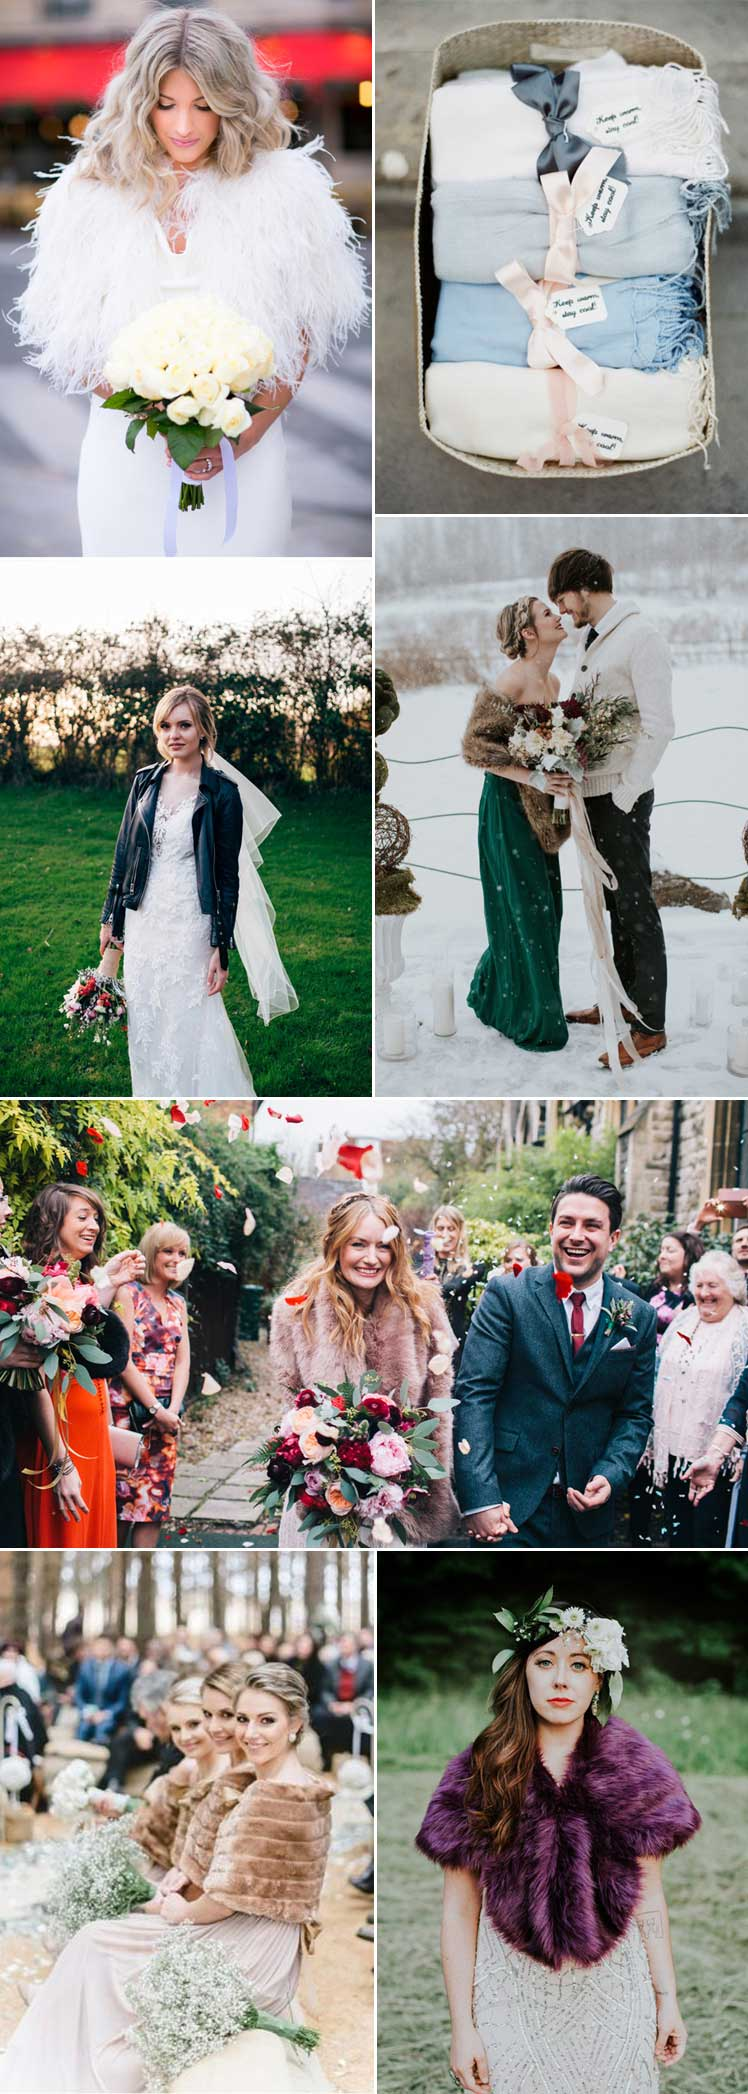 stylish ideas to wrap up for a winter wedding